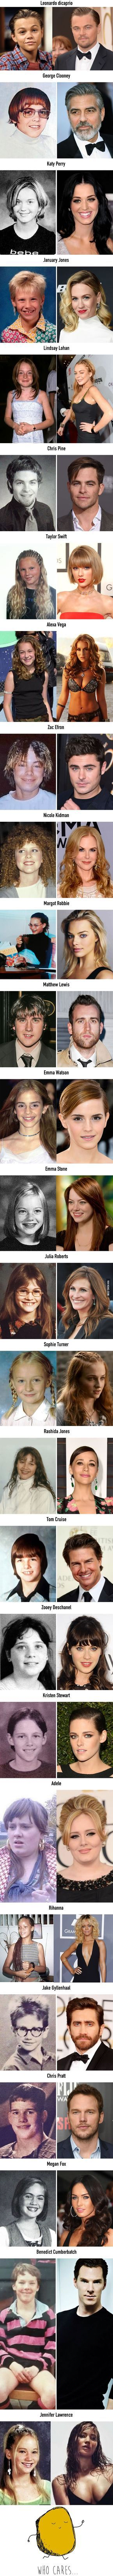 27 celebrities who blossomed after puberty